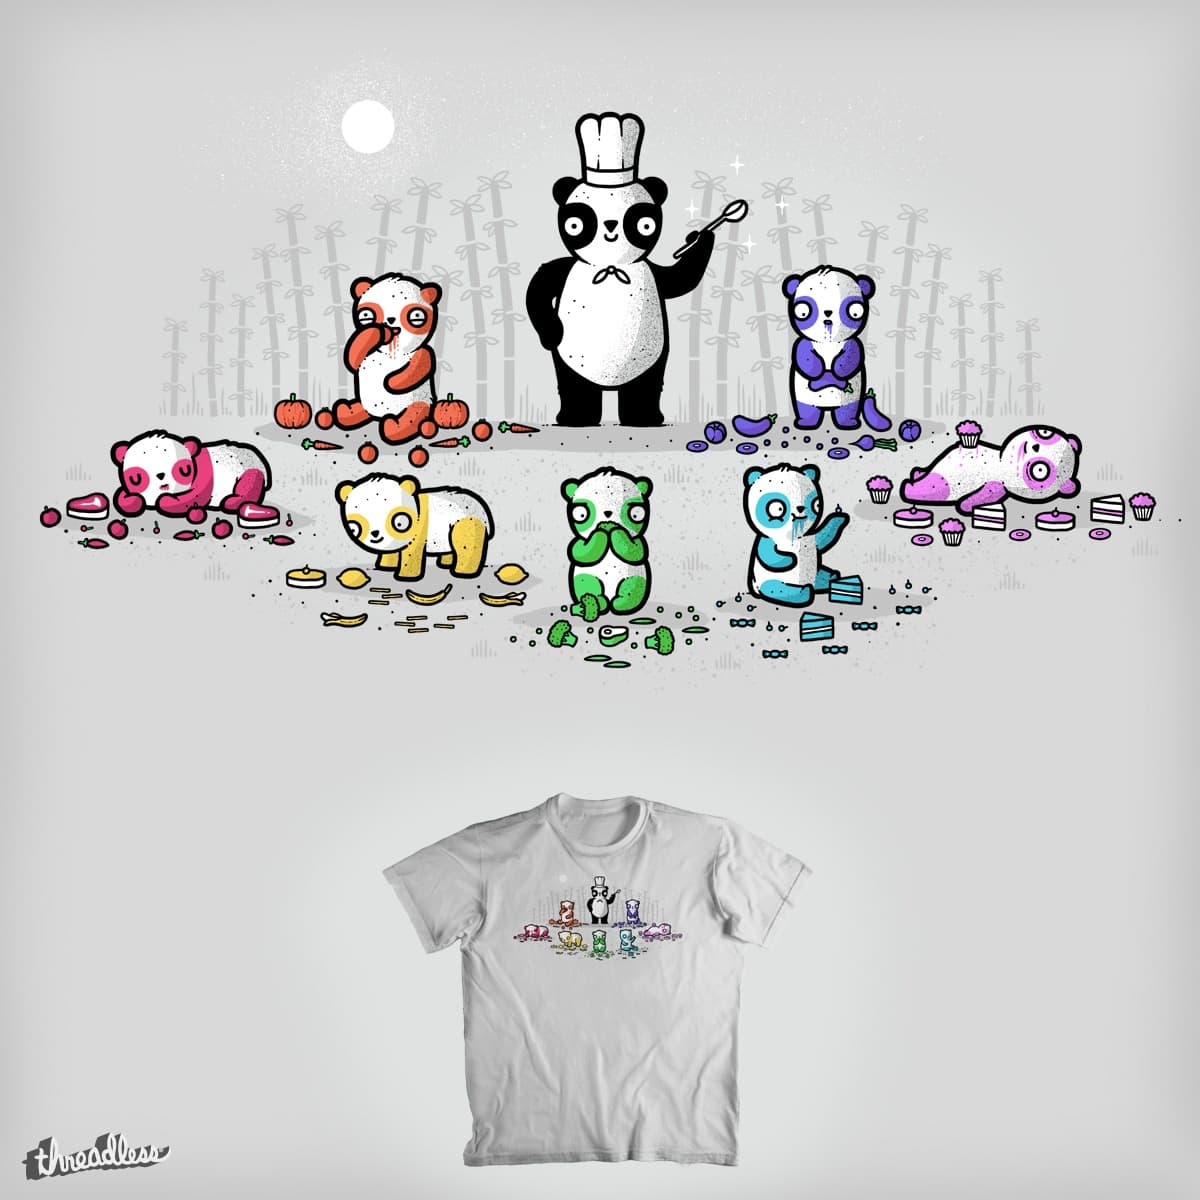 No artificial coloring by randyotter3000 on Threadless